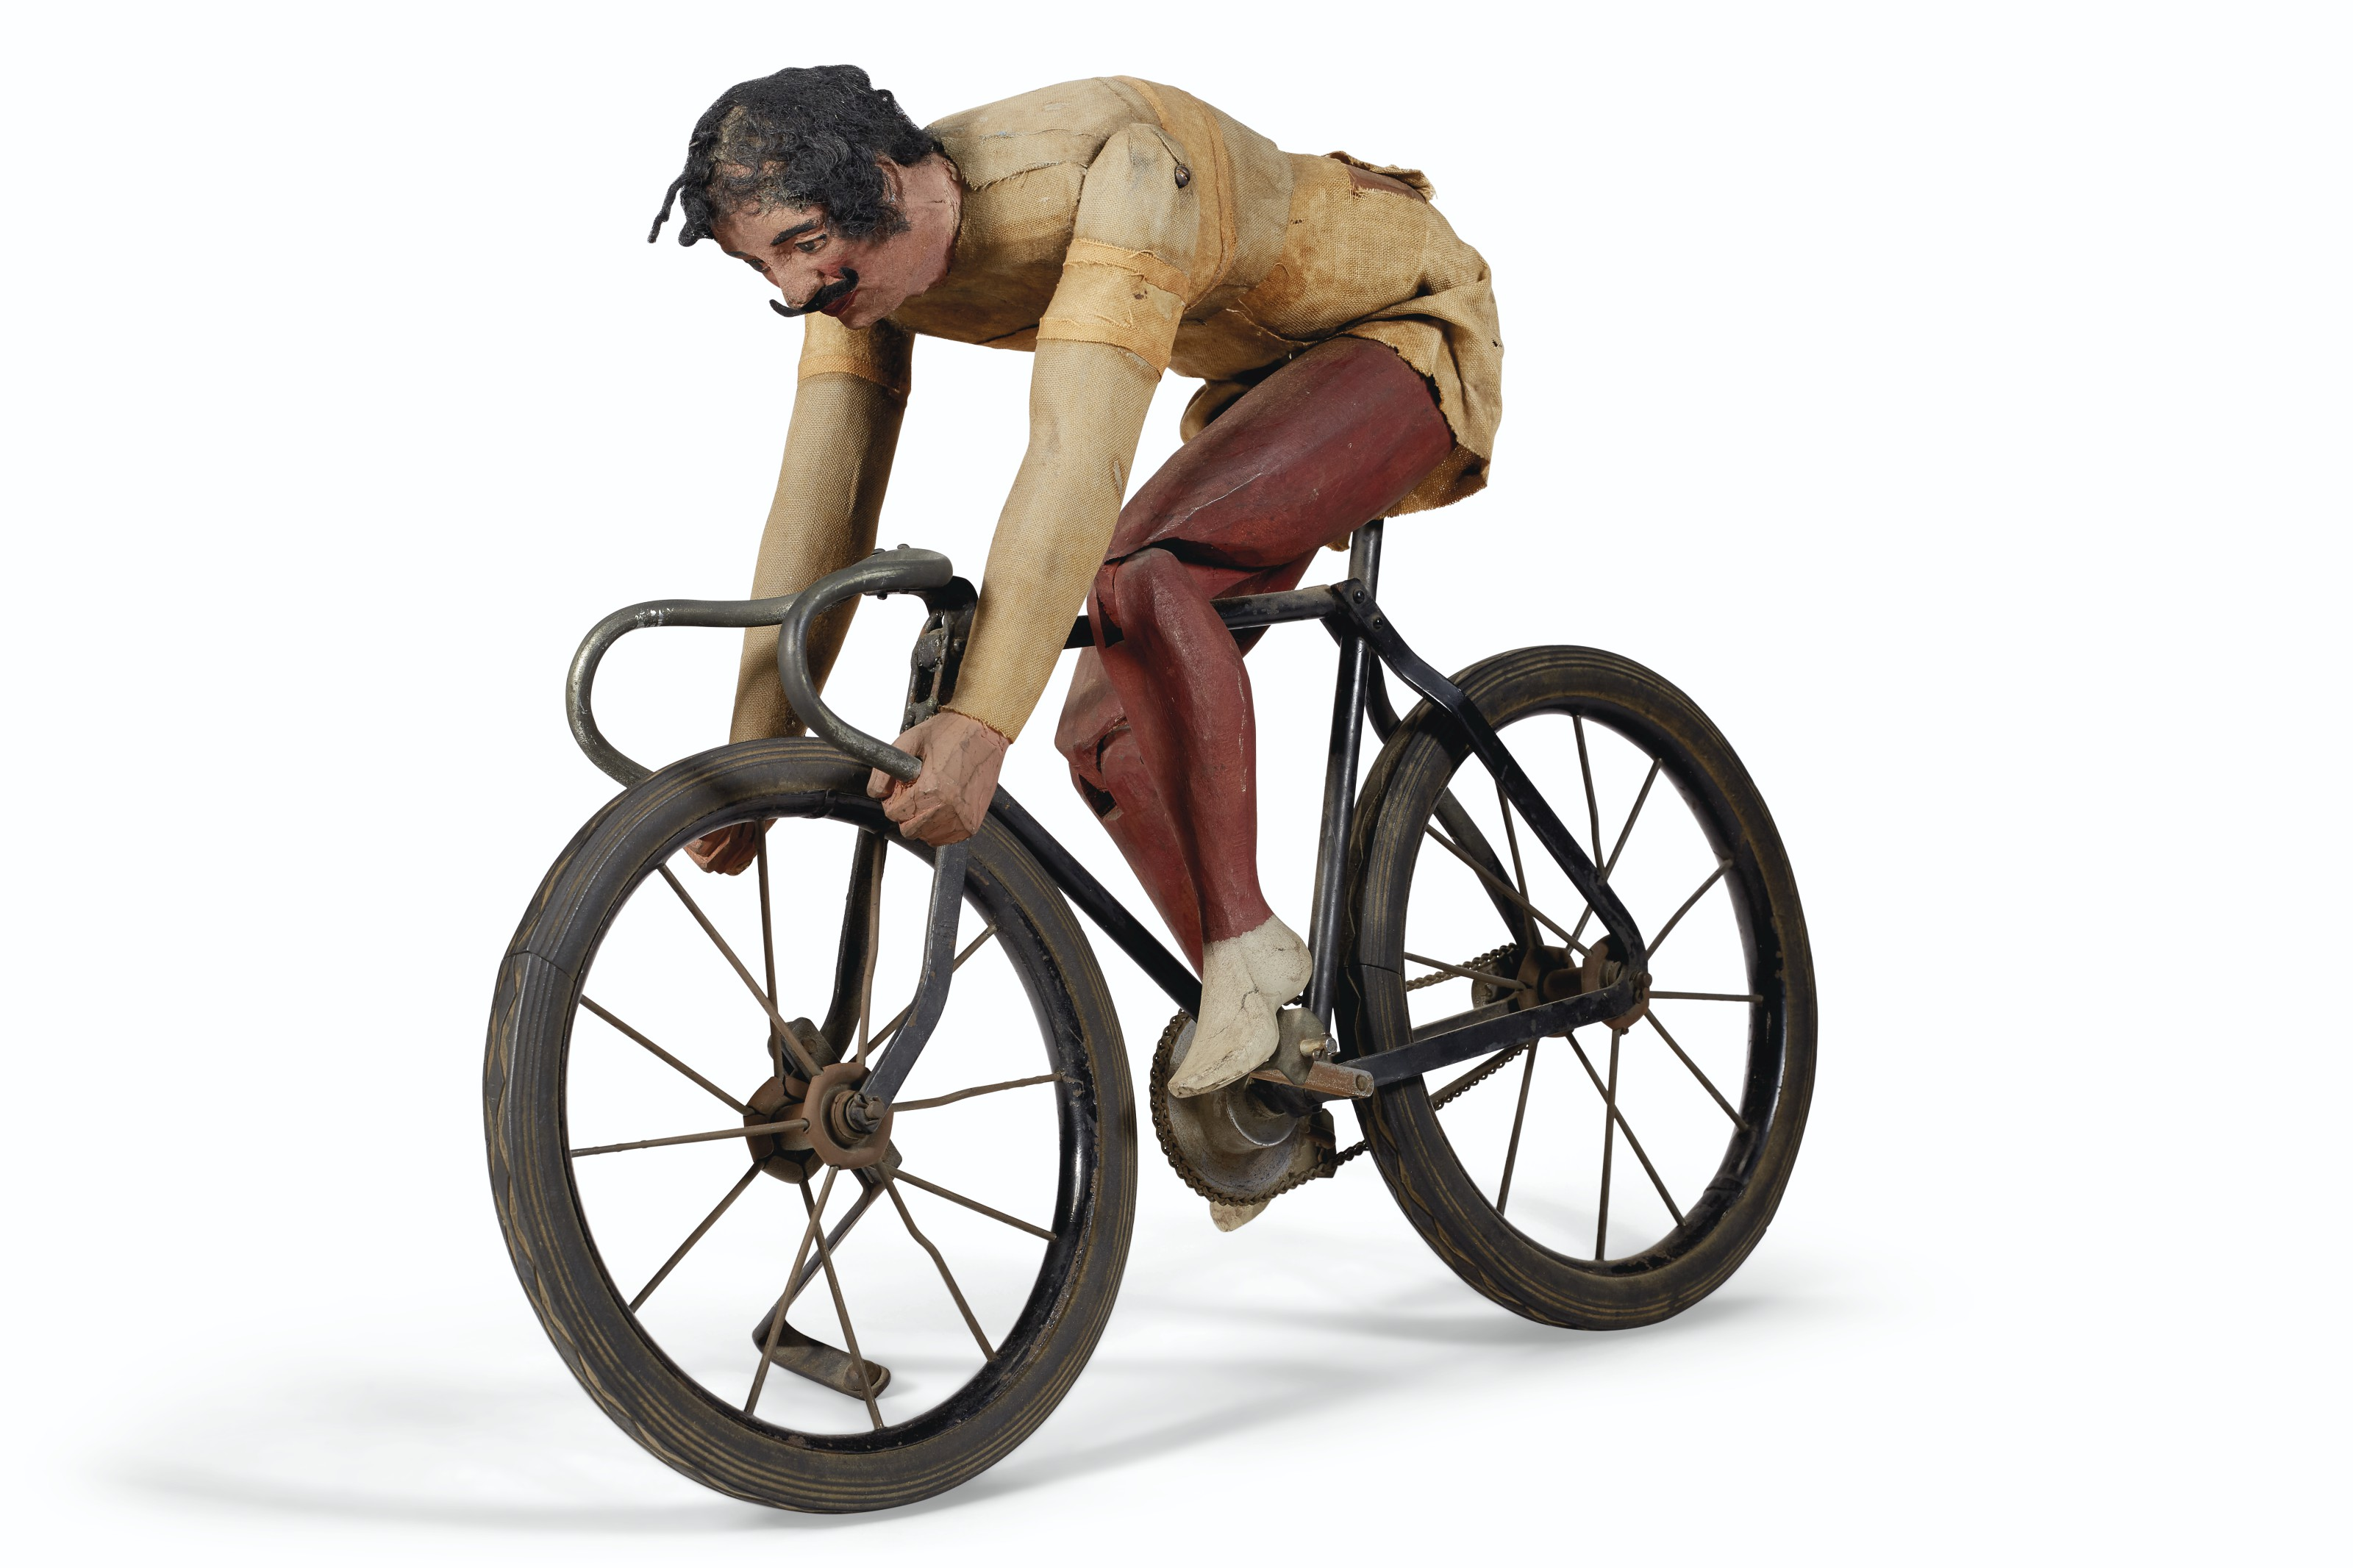 AN ARTICULATED PAINTED PINE AND FABRIC CYCLIST